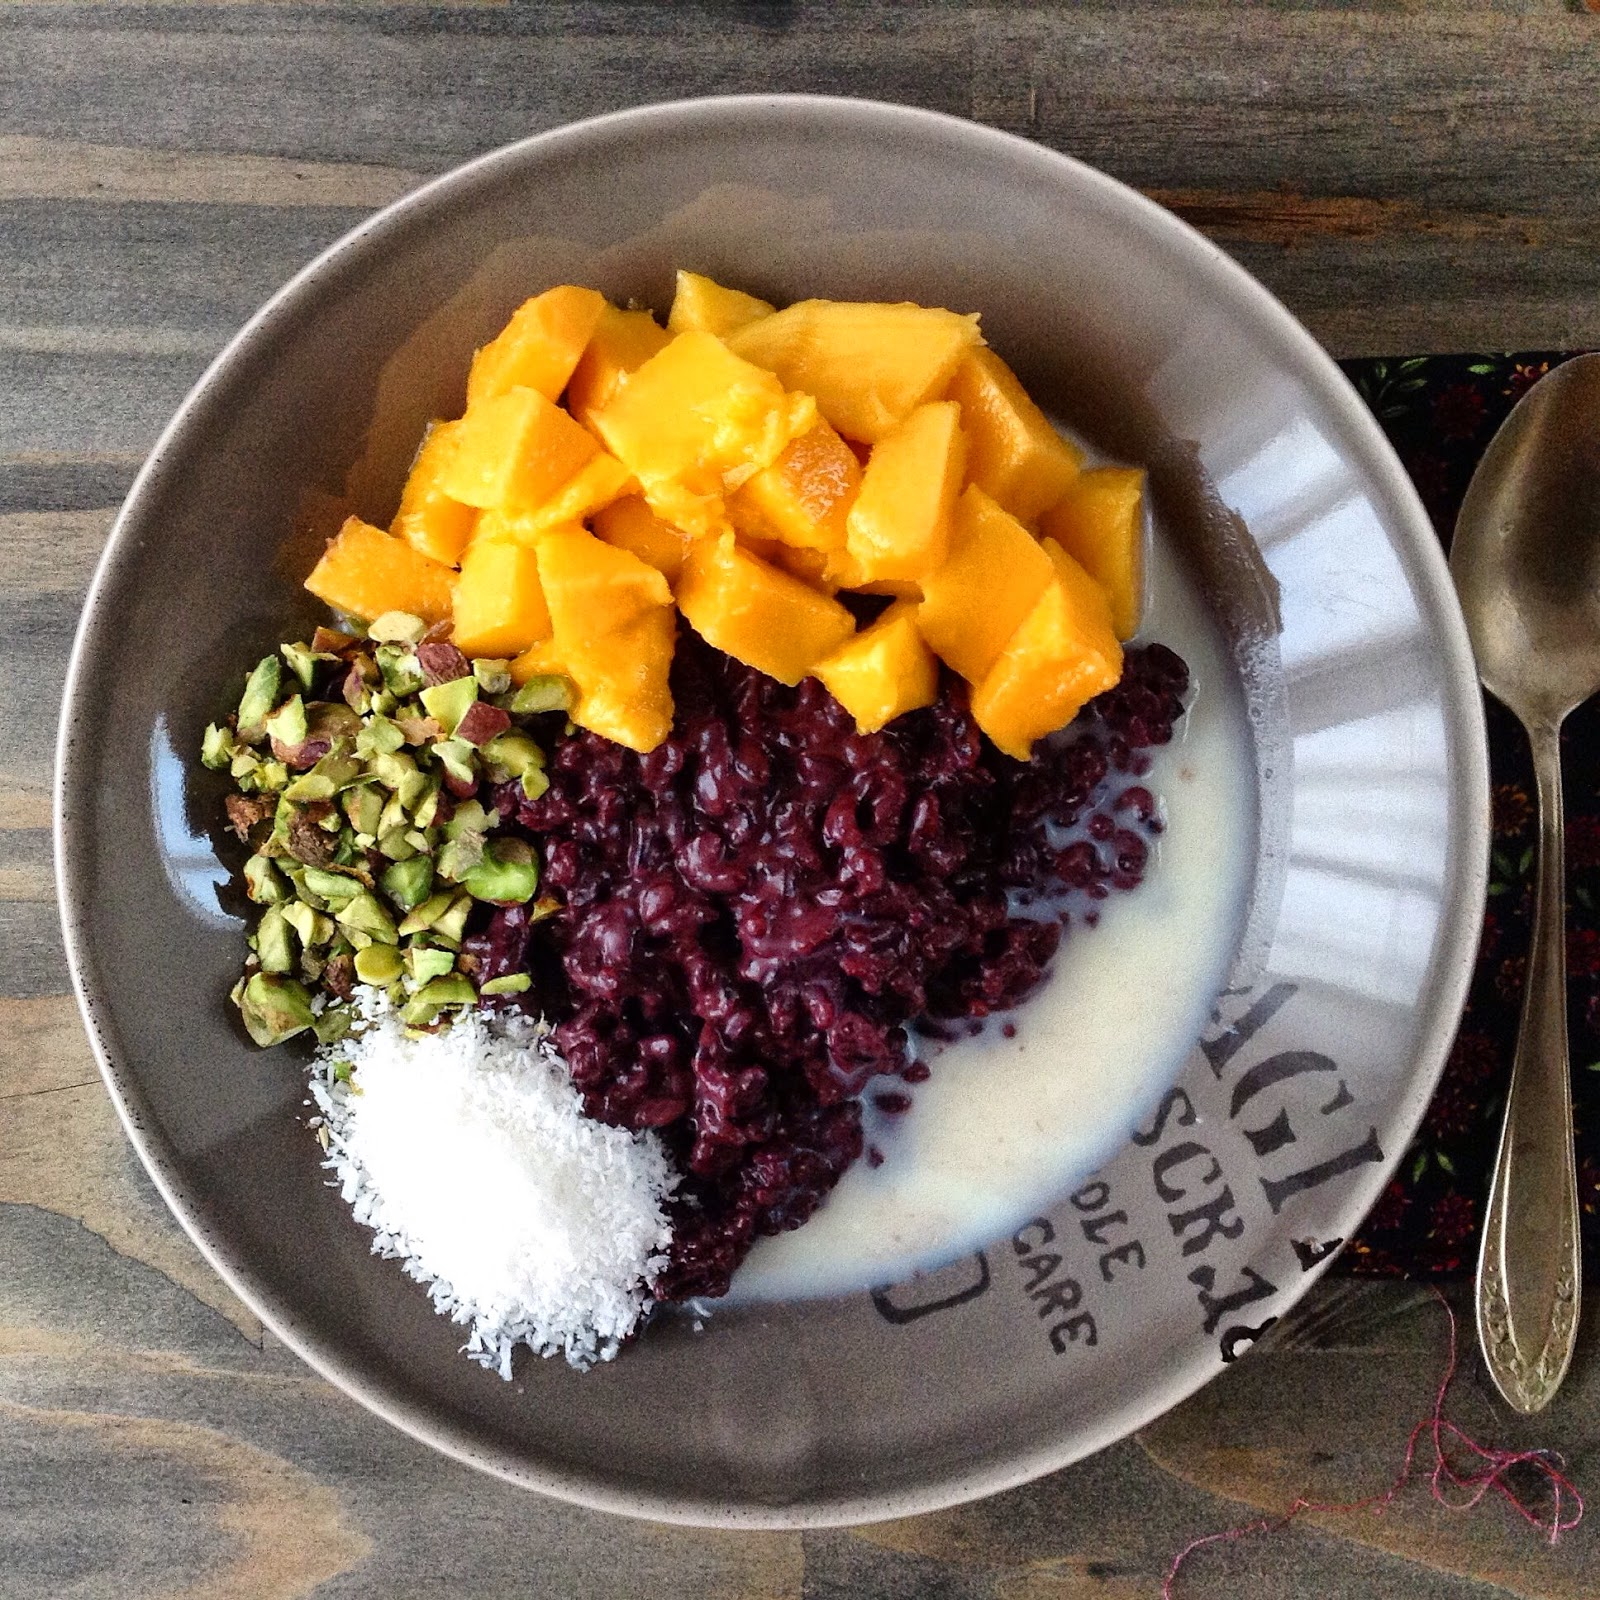 Arroz negro doce | Black rice pudding